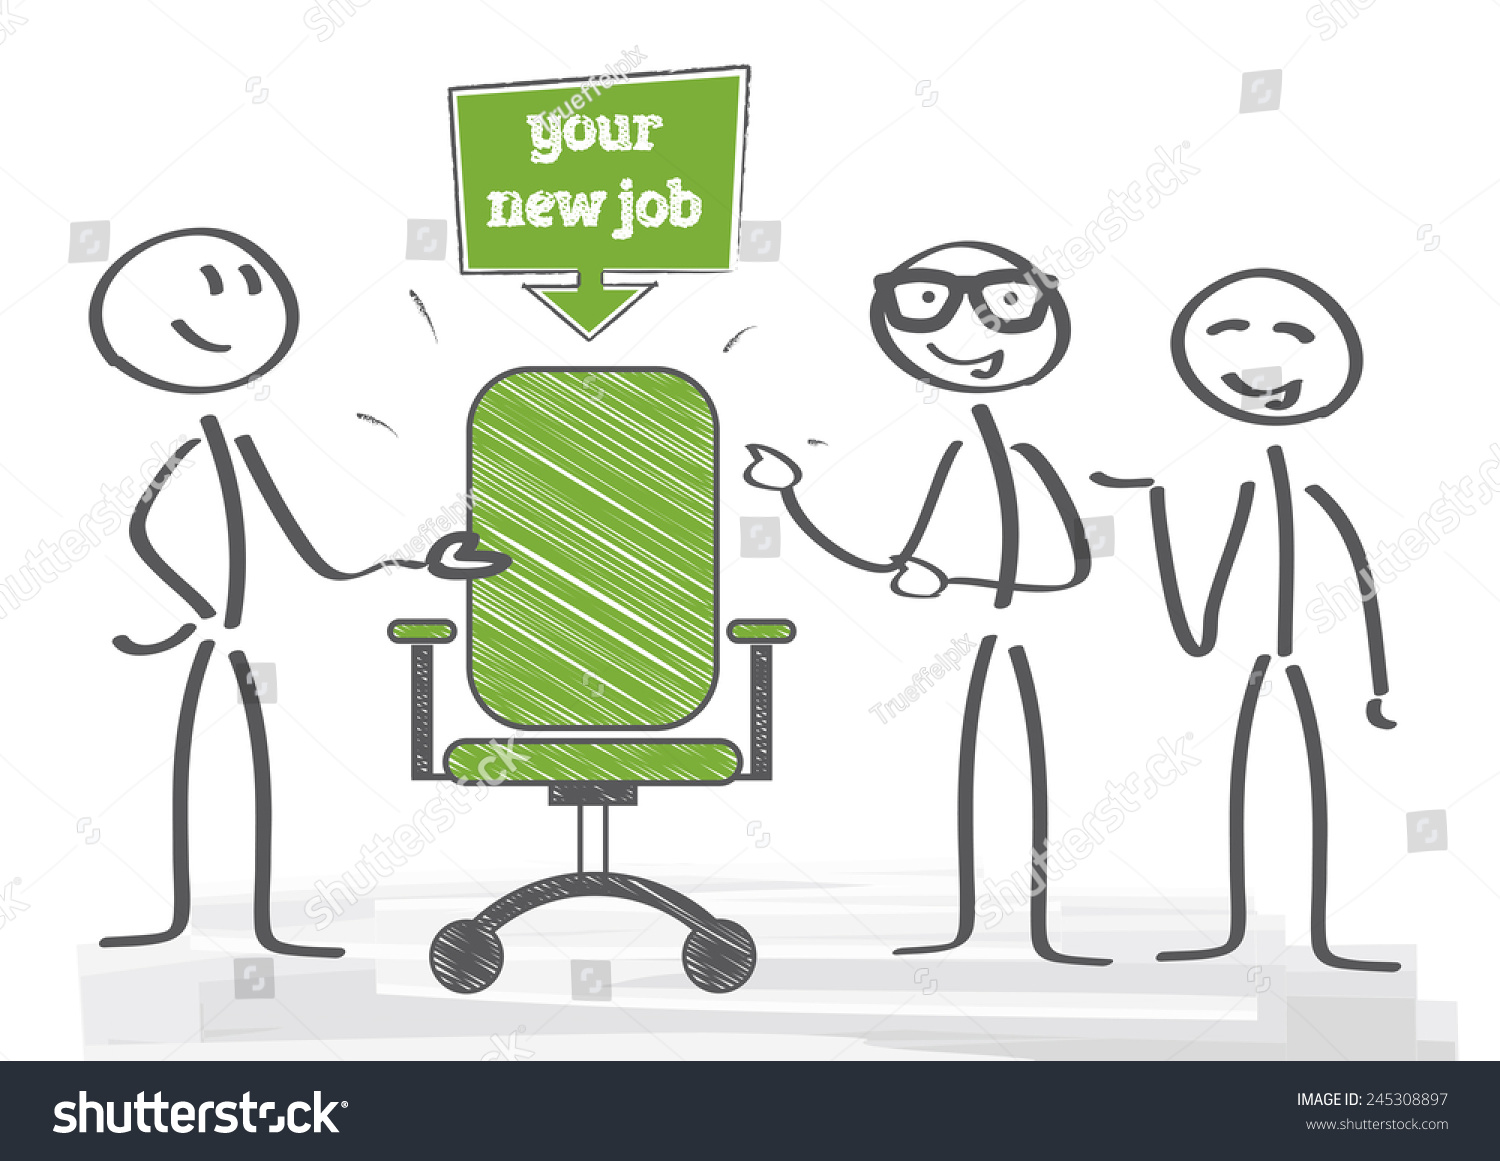 start new career your new job stock vector illustration  start new career your new job preview save to a lightbox